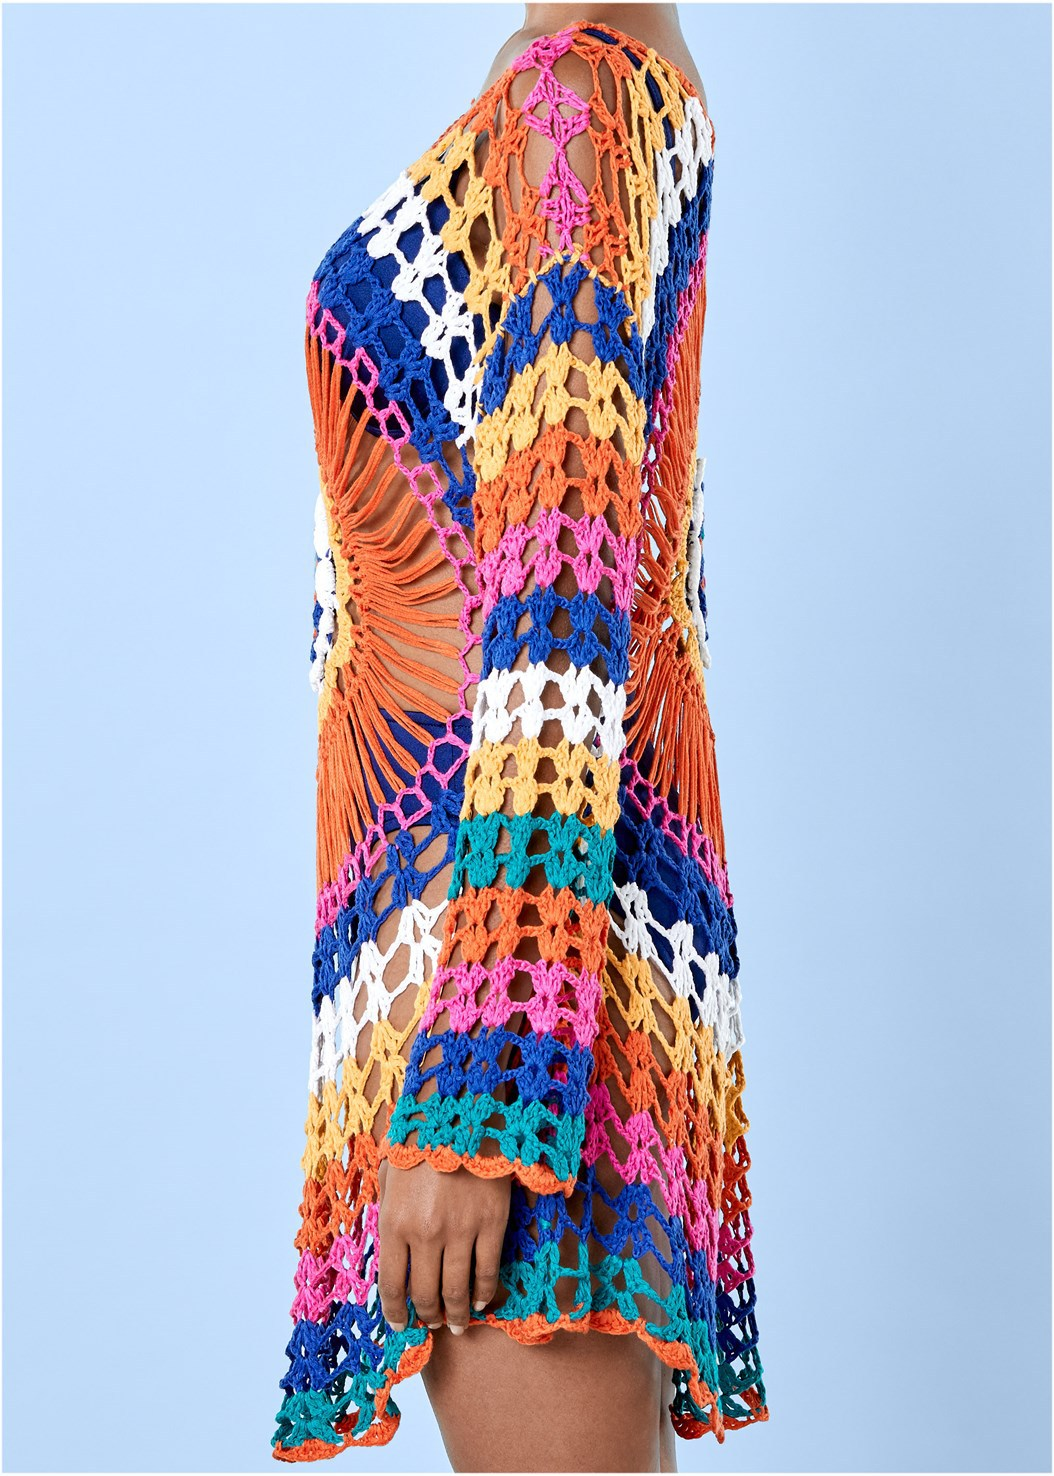 a7eeac1fdb1ce Summer Swimsuit Women Beach Cover Up Hollow Out Crochet Rainbow Bathing  Suit Beach Sarongs Cover Ups Swimwear Beach Dress Tunic-in Cover-Ups from  Sports ...